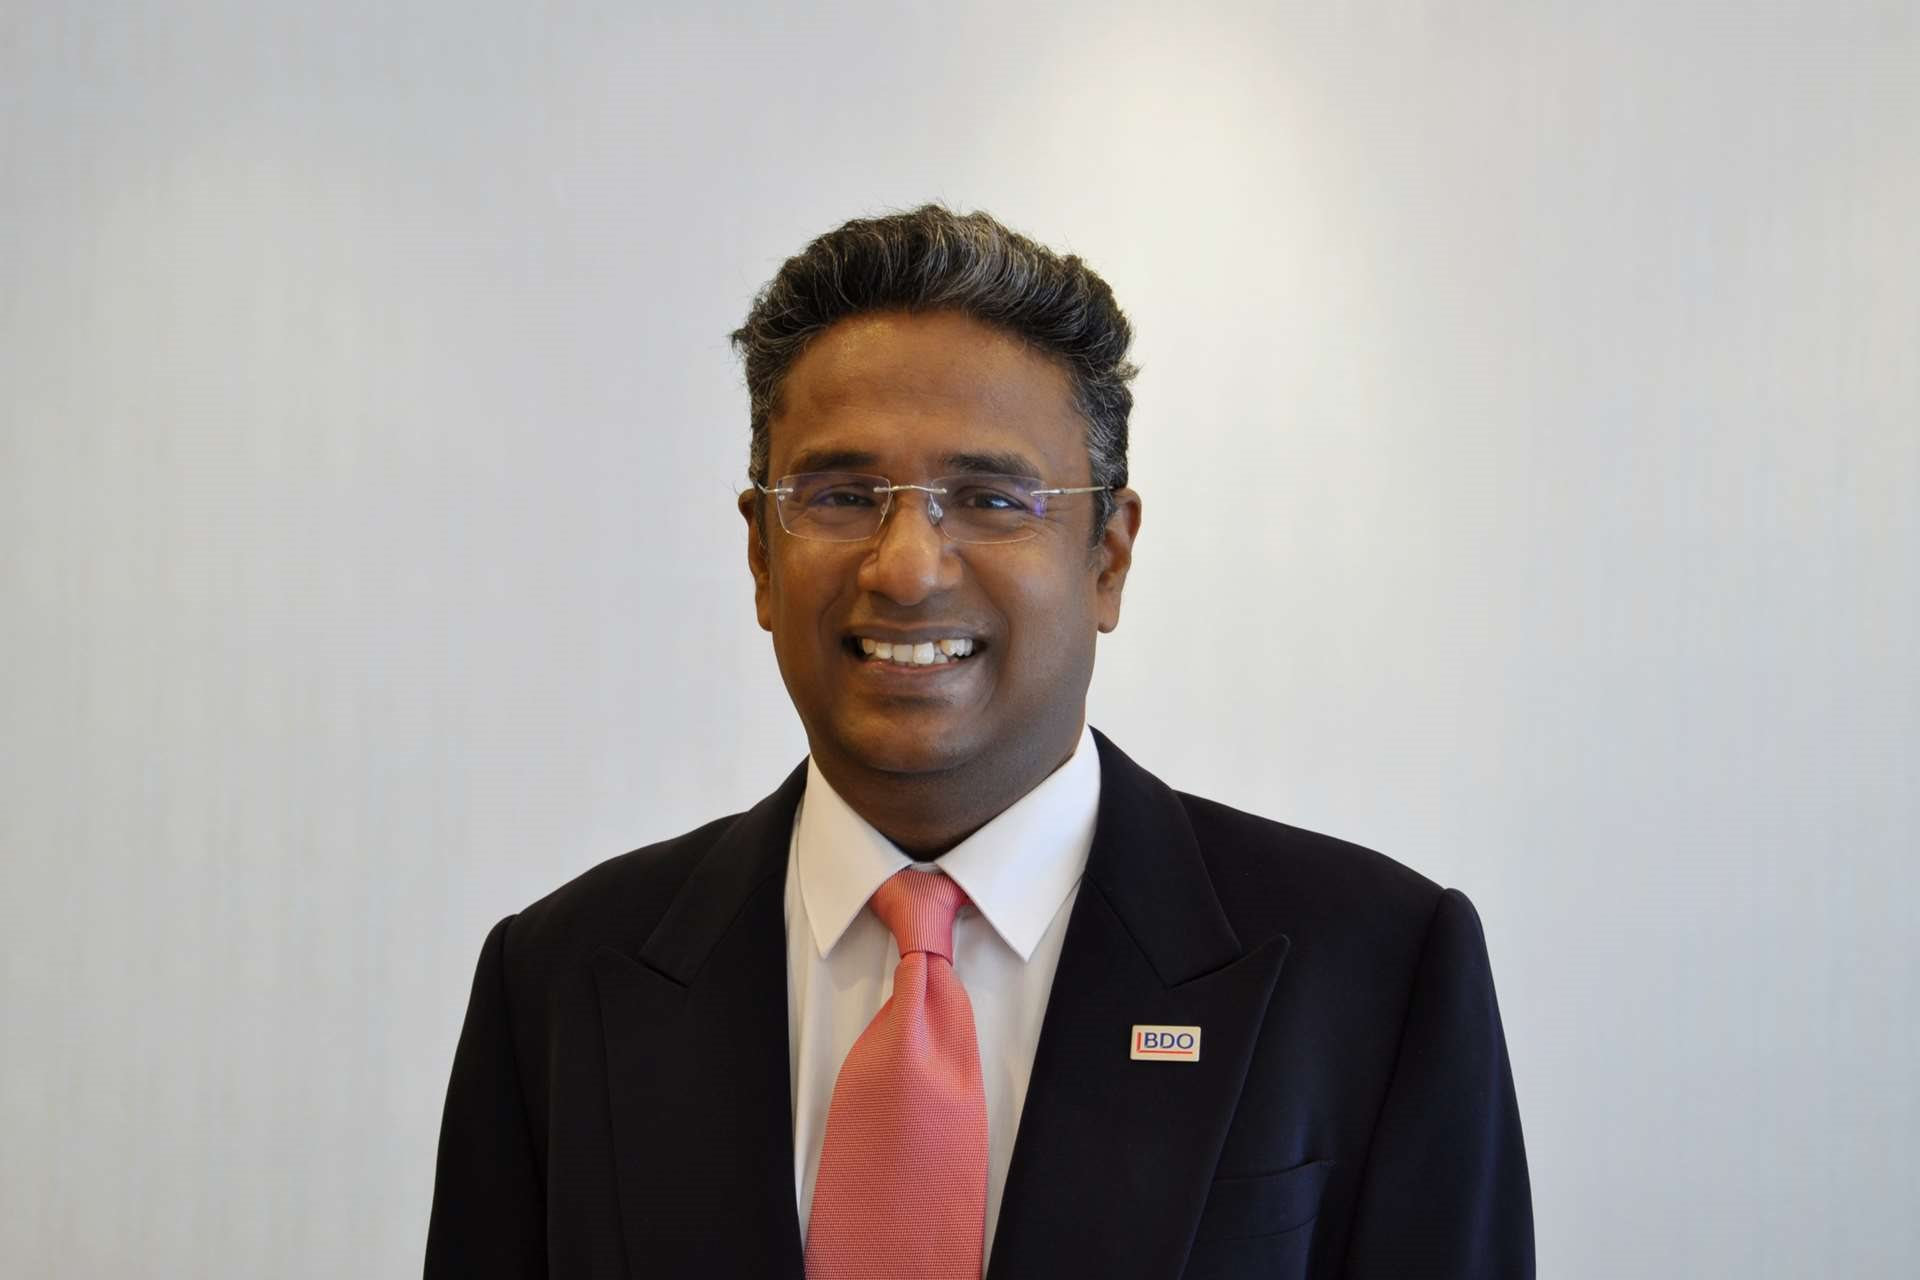 Karthigayan Supramaniam, Executive Director, Advisory